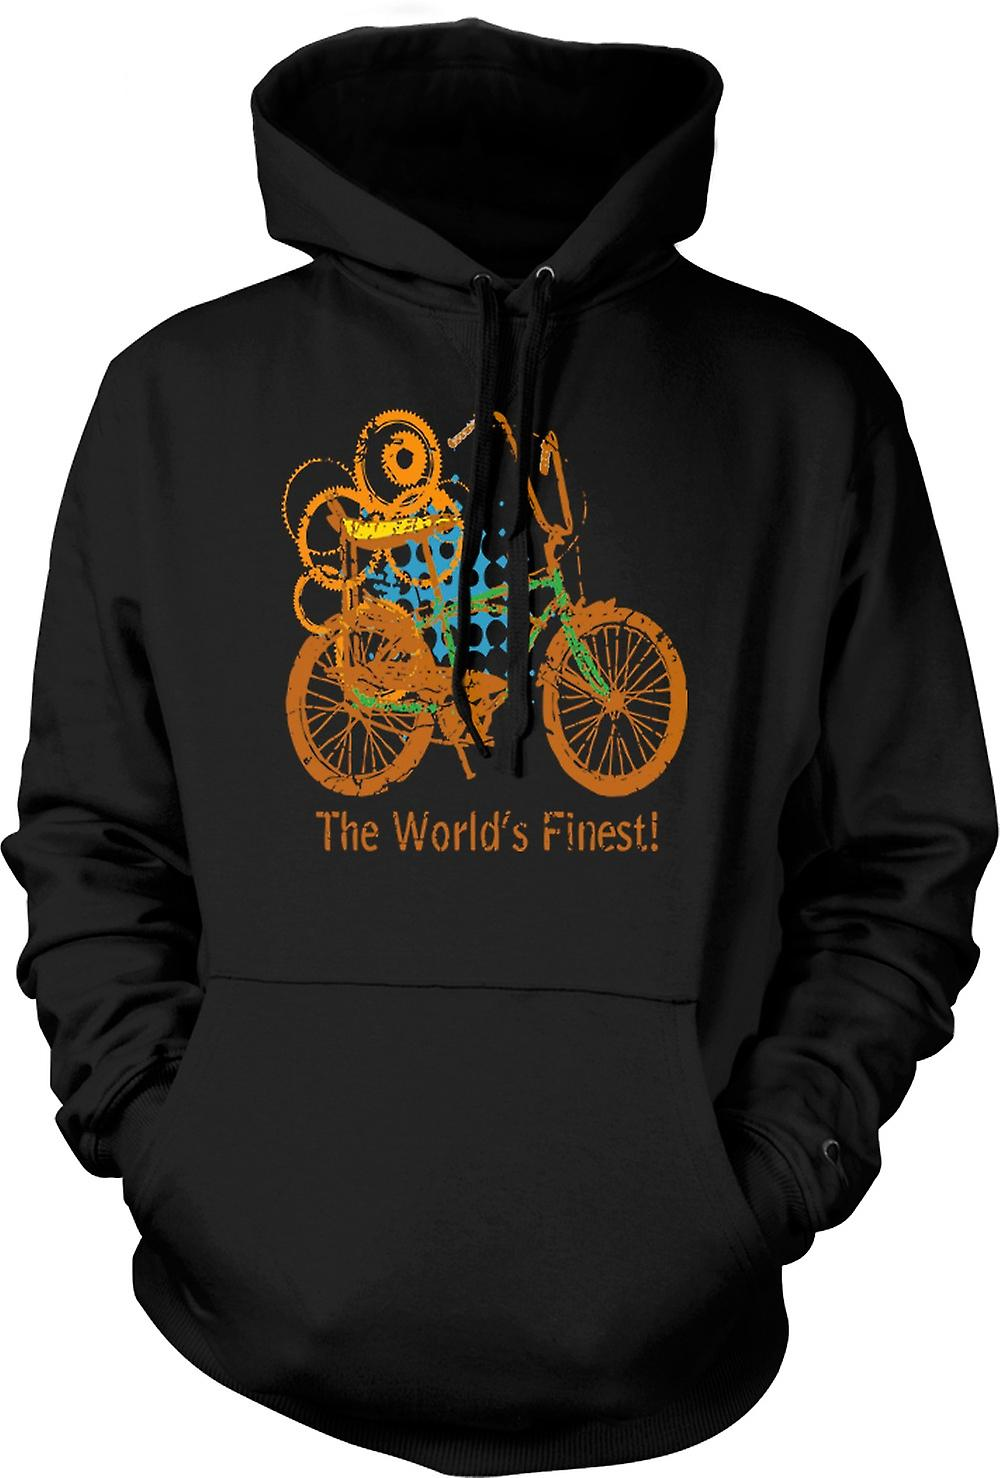 Mens Hoodie - Chopper Bike - World's Finest - Funny Graphic Design